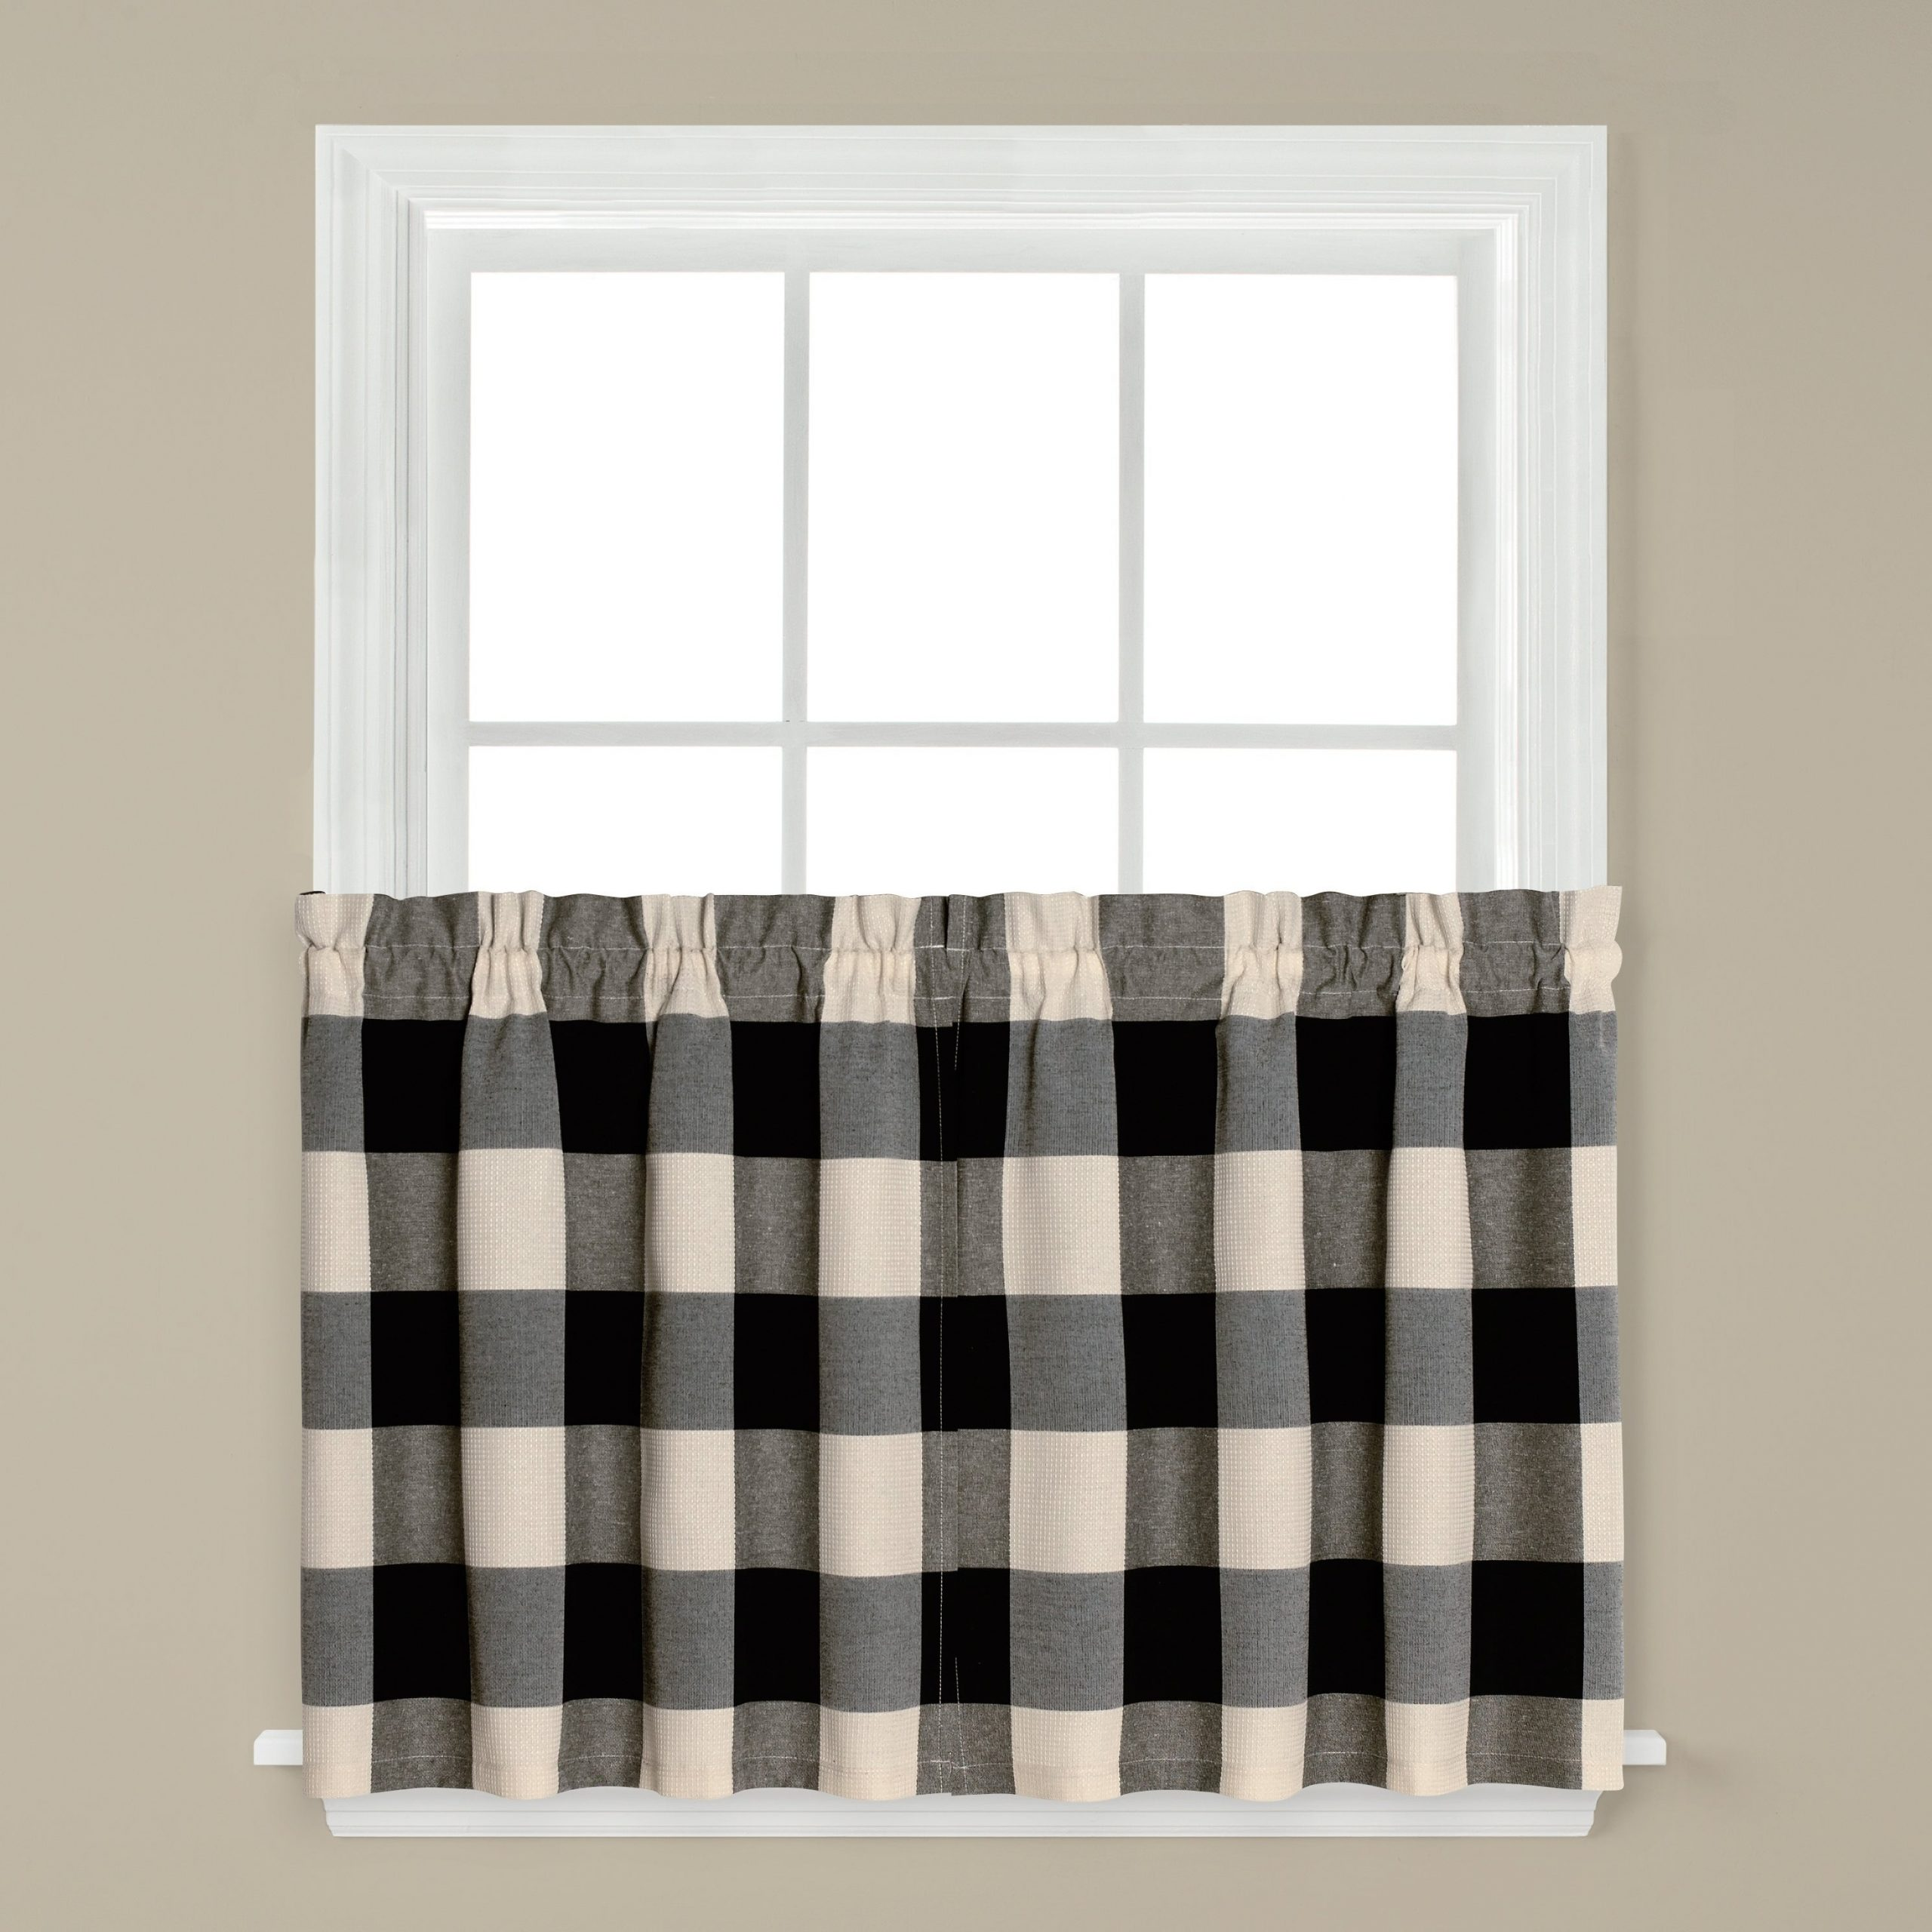 Buy Machine Wash Curtain Tiers Online At Overstock | Our For Dexter 24 Inch Tier Pairs In Green (View 7 of 20)